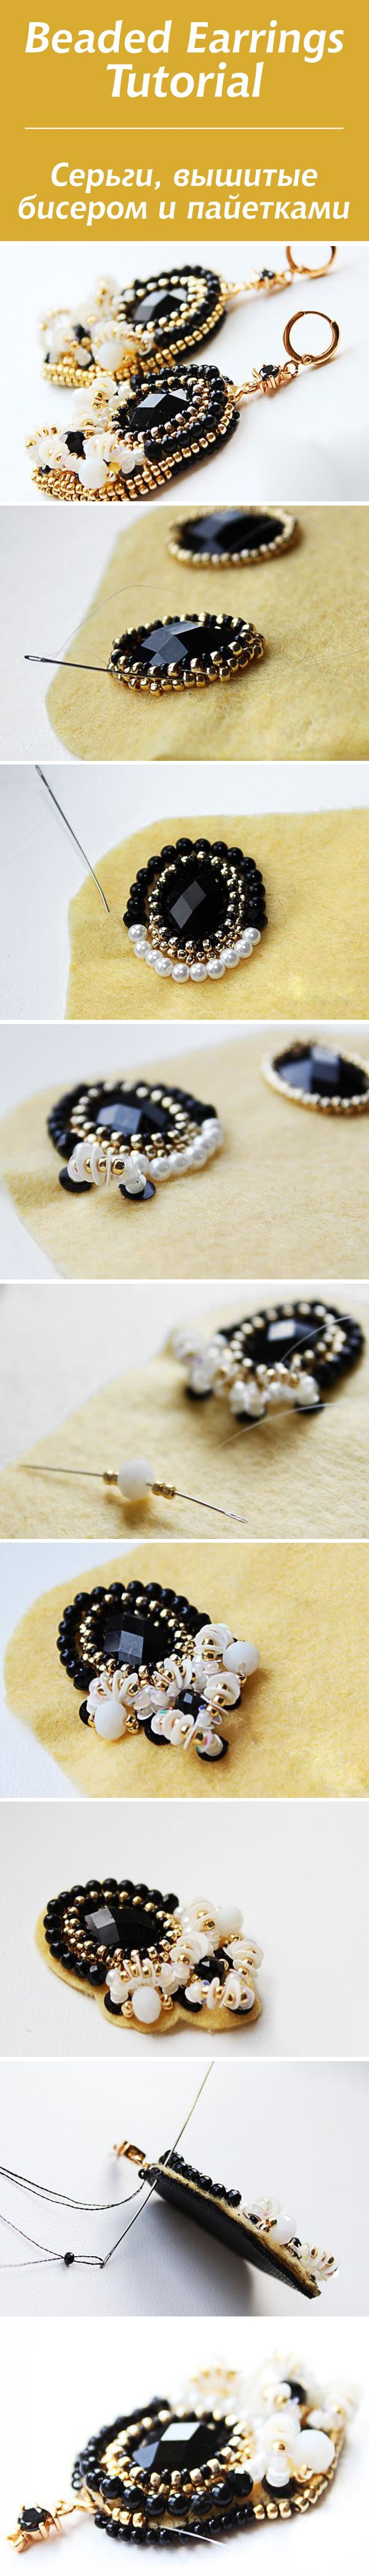 Beaded Earrings Tutorial / bead embroidery